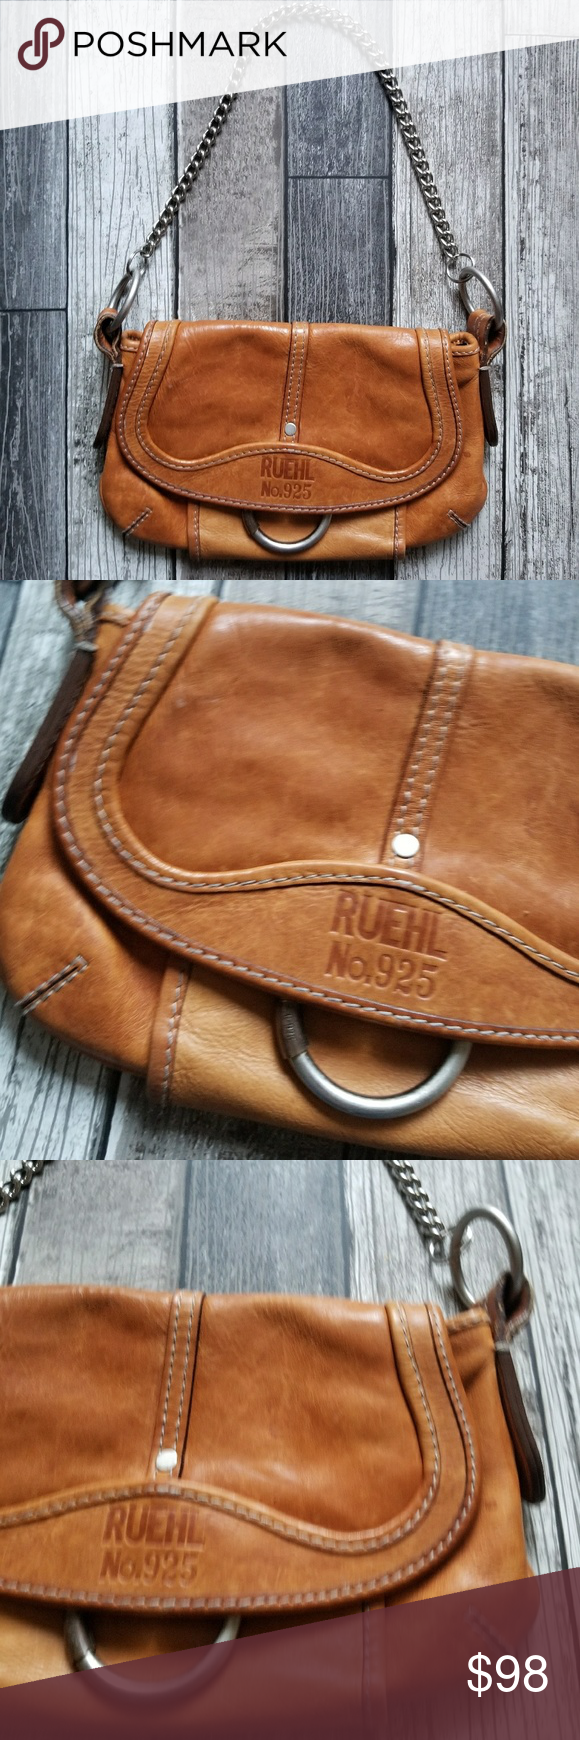 Ruehl No 925 Shoulder Bag Rich Saddle Colored Leather Flap Silver Toned Chain